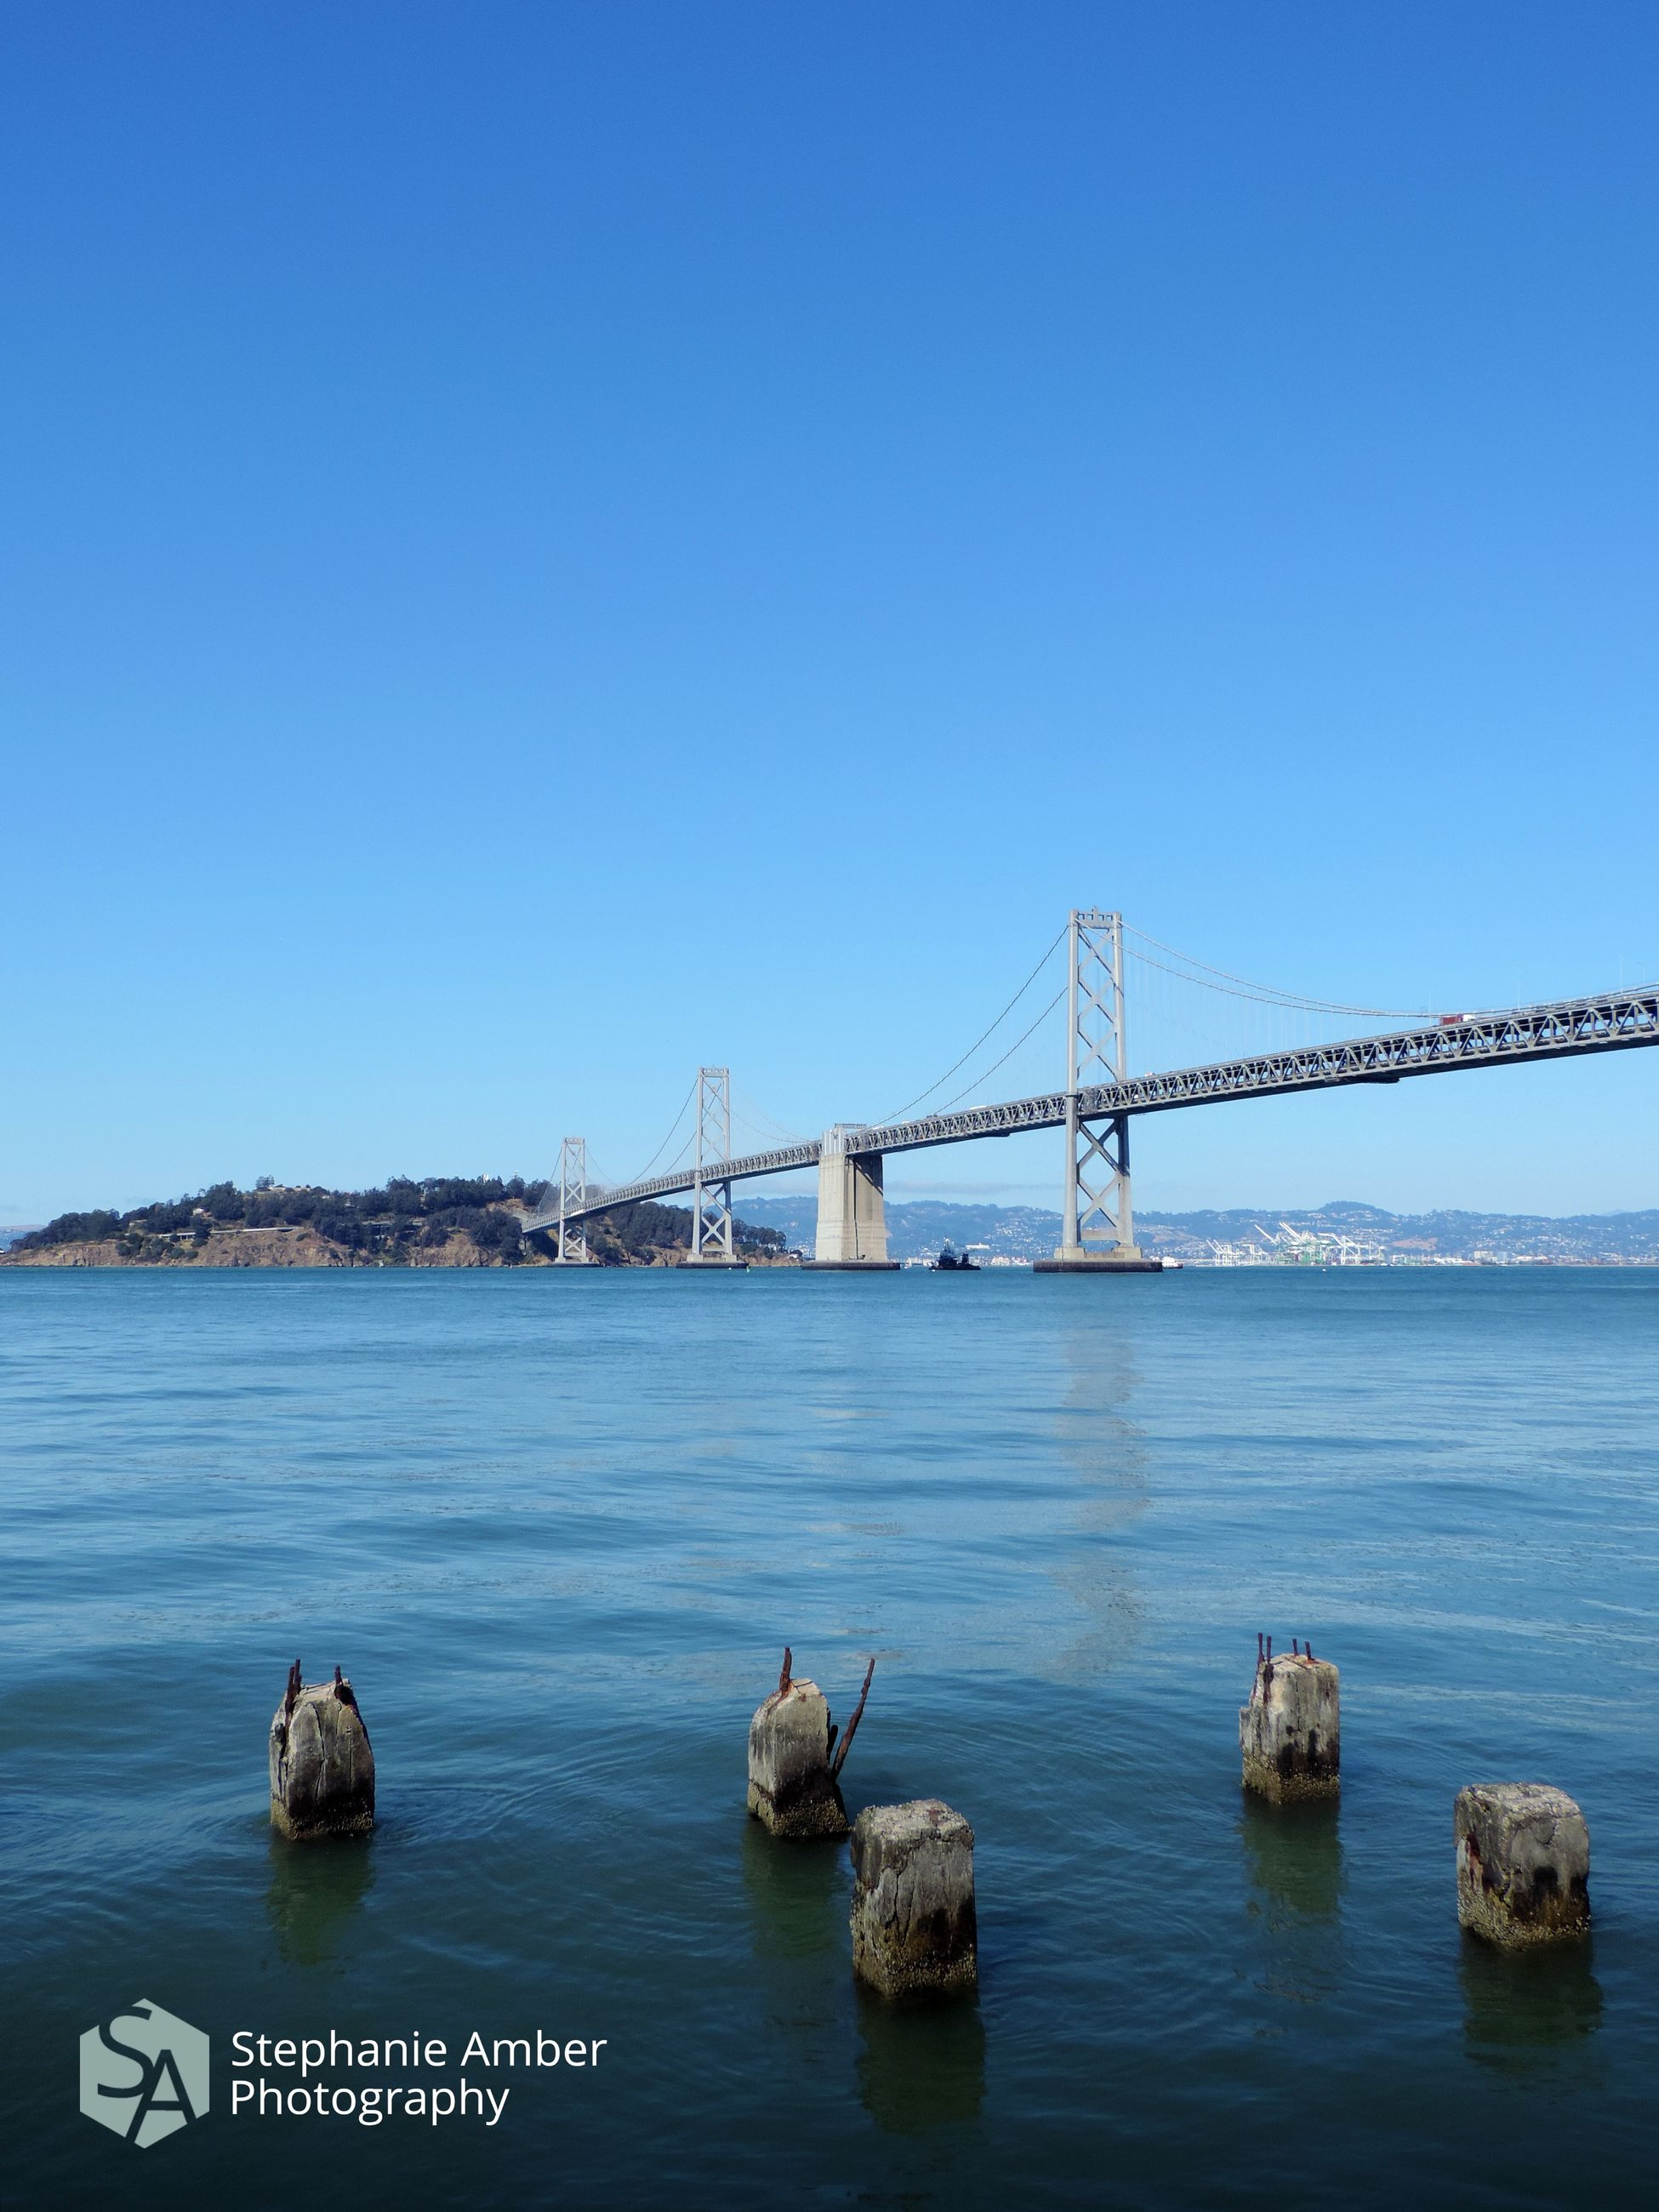 water, bridge, sky, bridge - man made structure, connection, built structure, transportation, clear sky, architecture, nature, sea, copy space, blue, suspension bridge, day, waterfront, no people, beauty in nature, travel destinations, bay